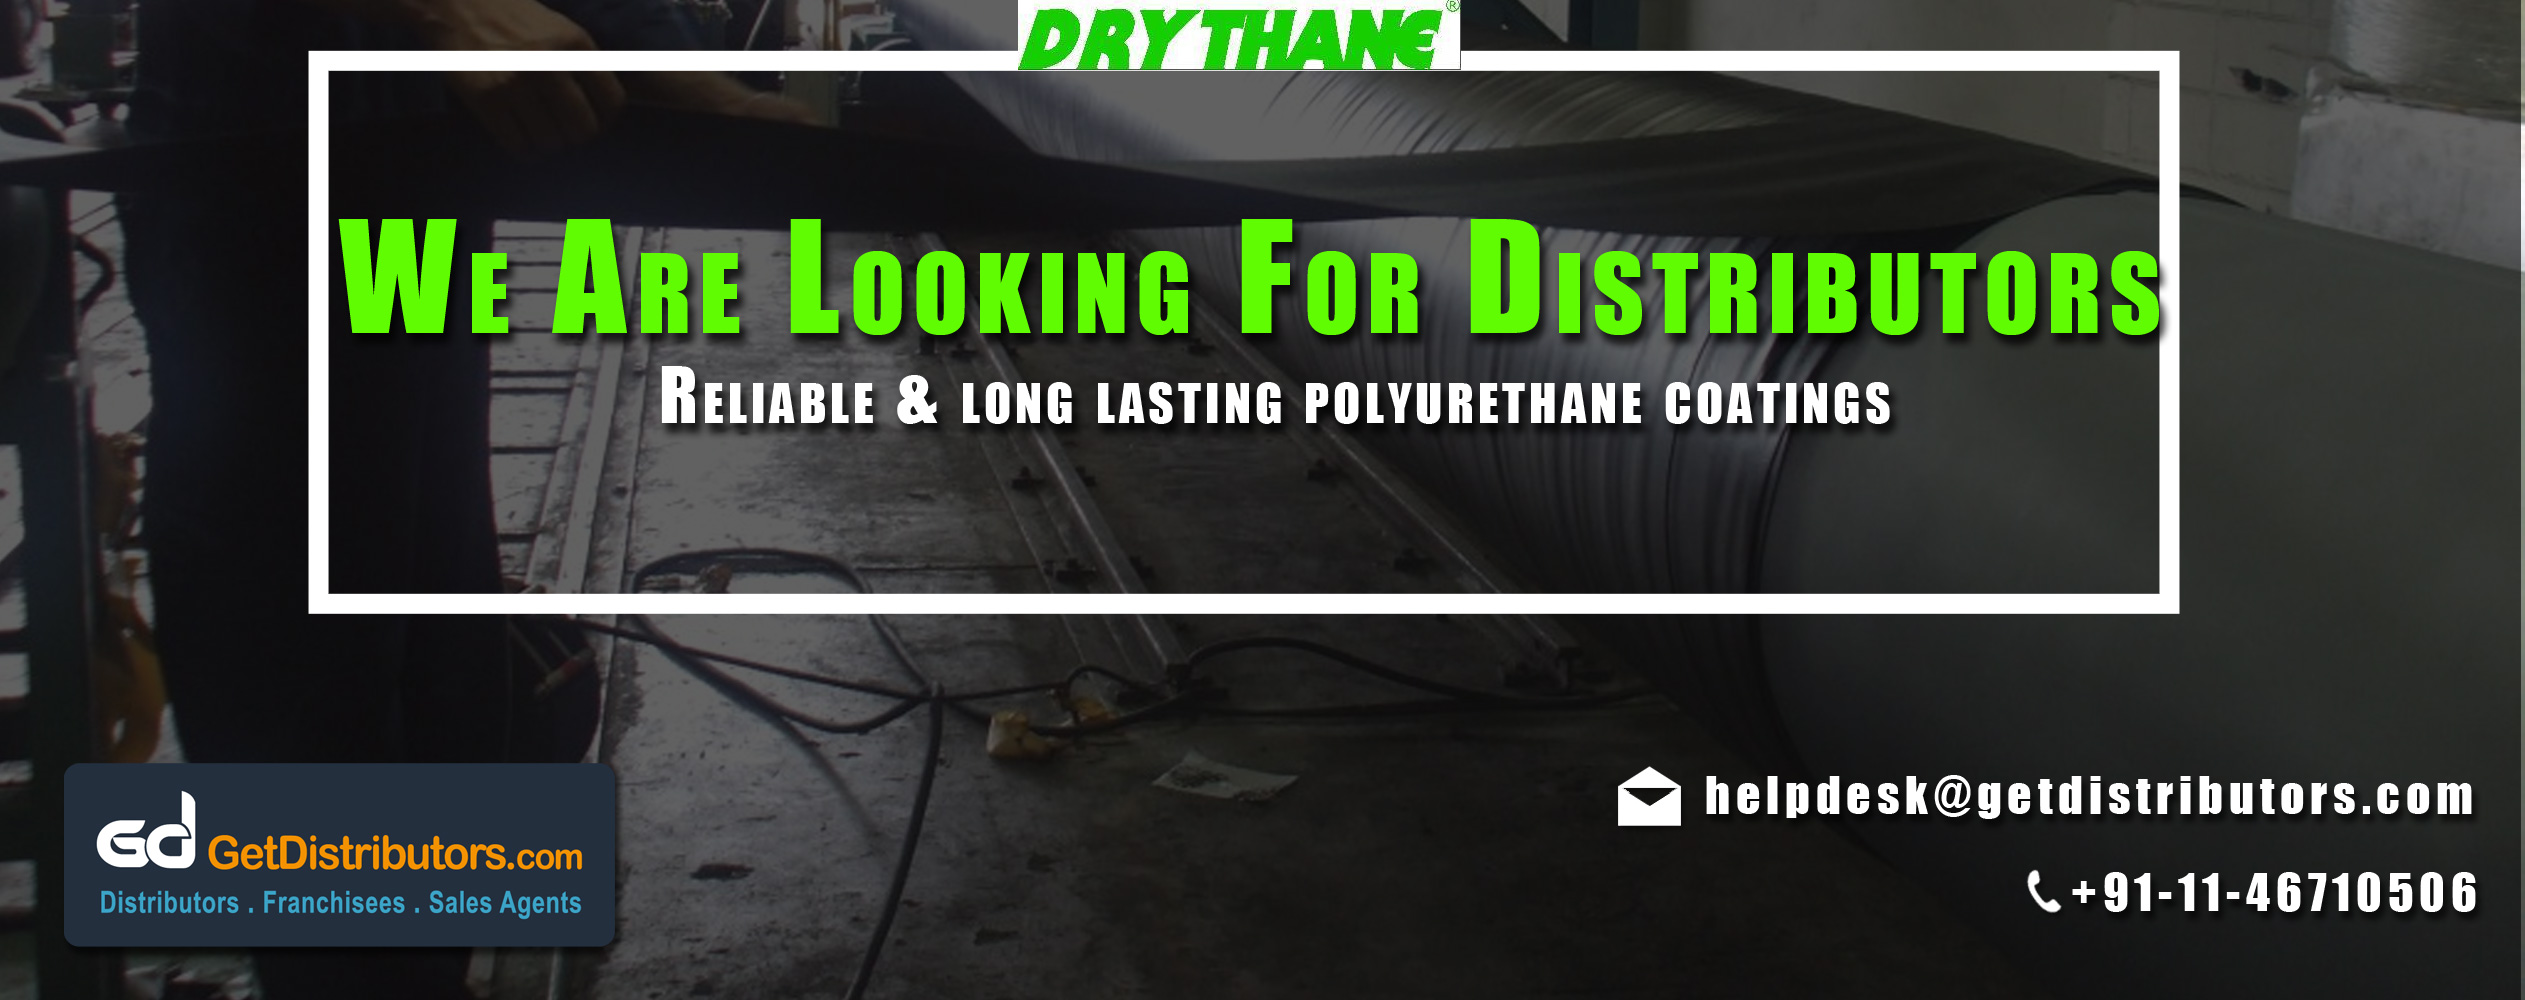 Reliable & Long Lasting Polyurethane Coatings